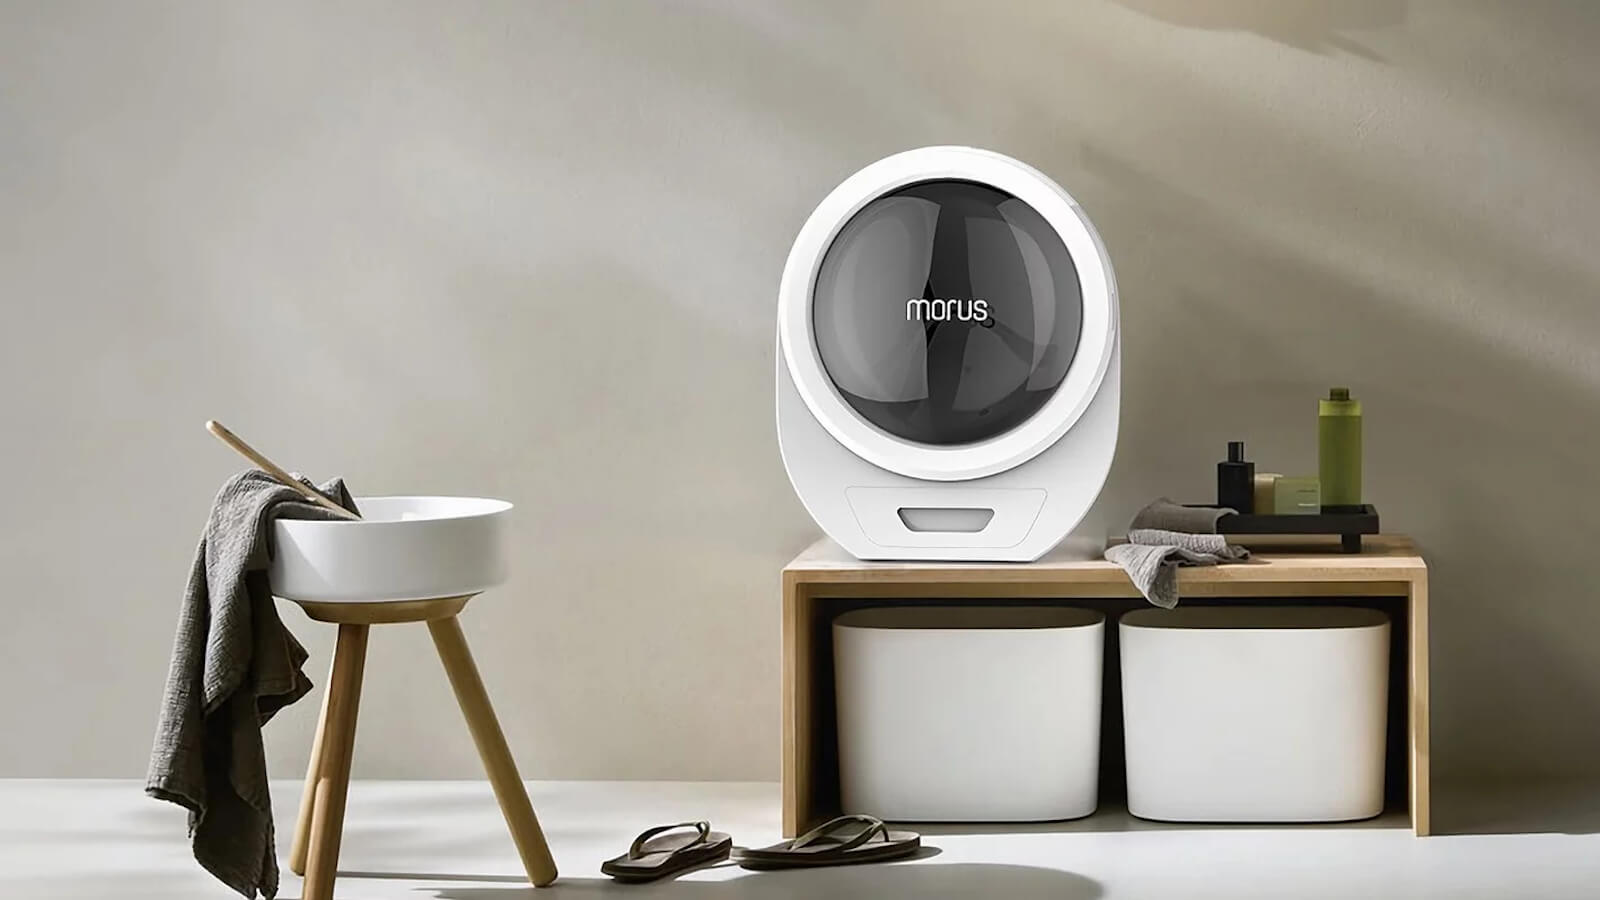 Morus Zero vacuum clothes dryer has an ultrafast drying time of 15 minutes